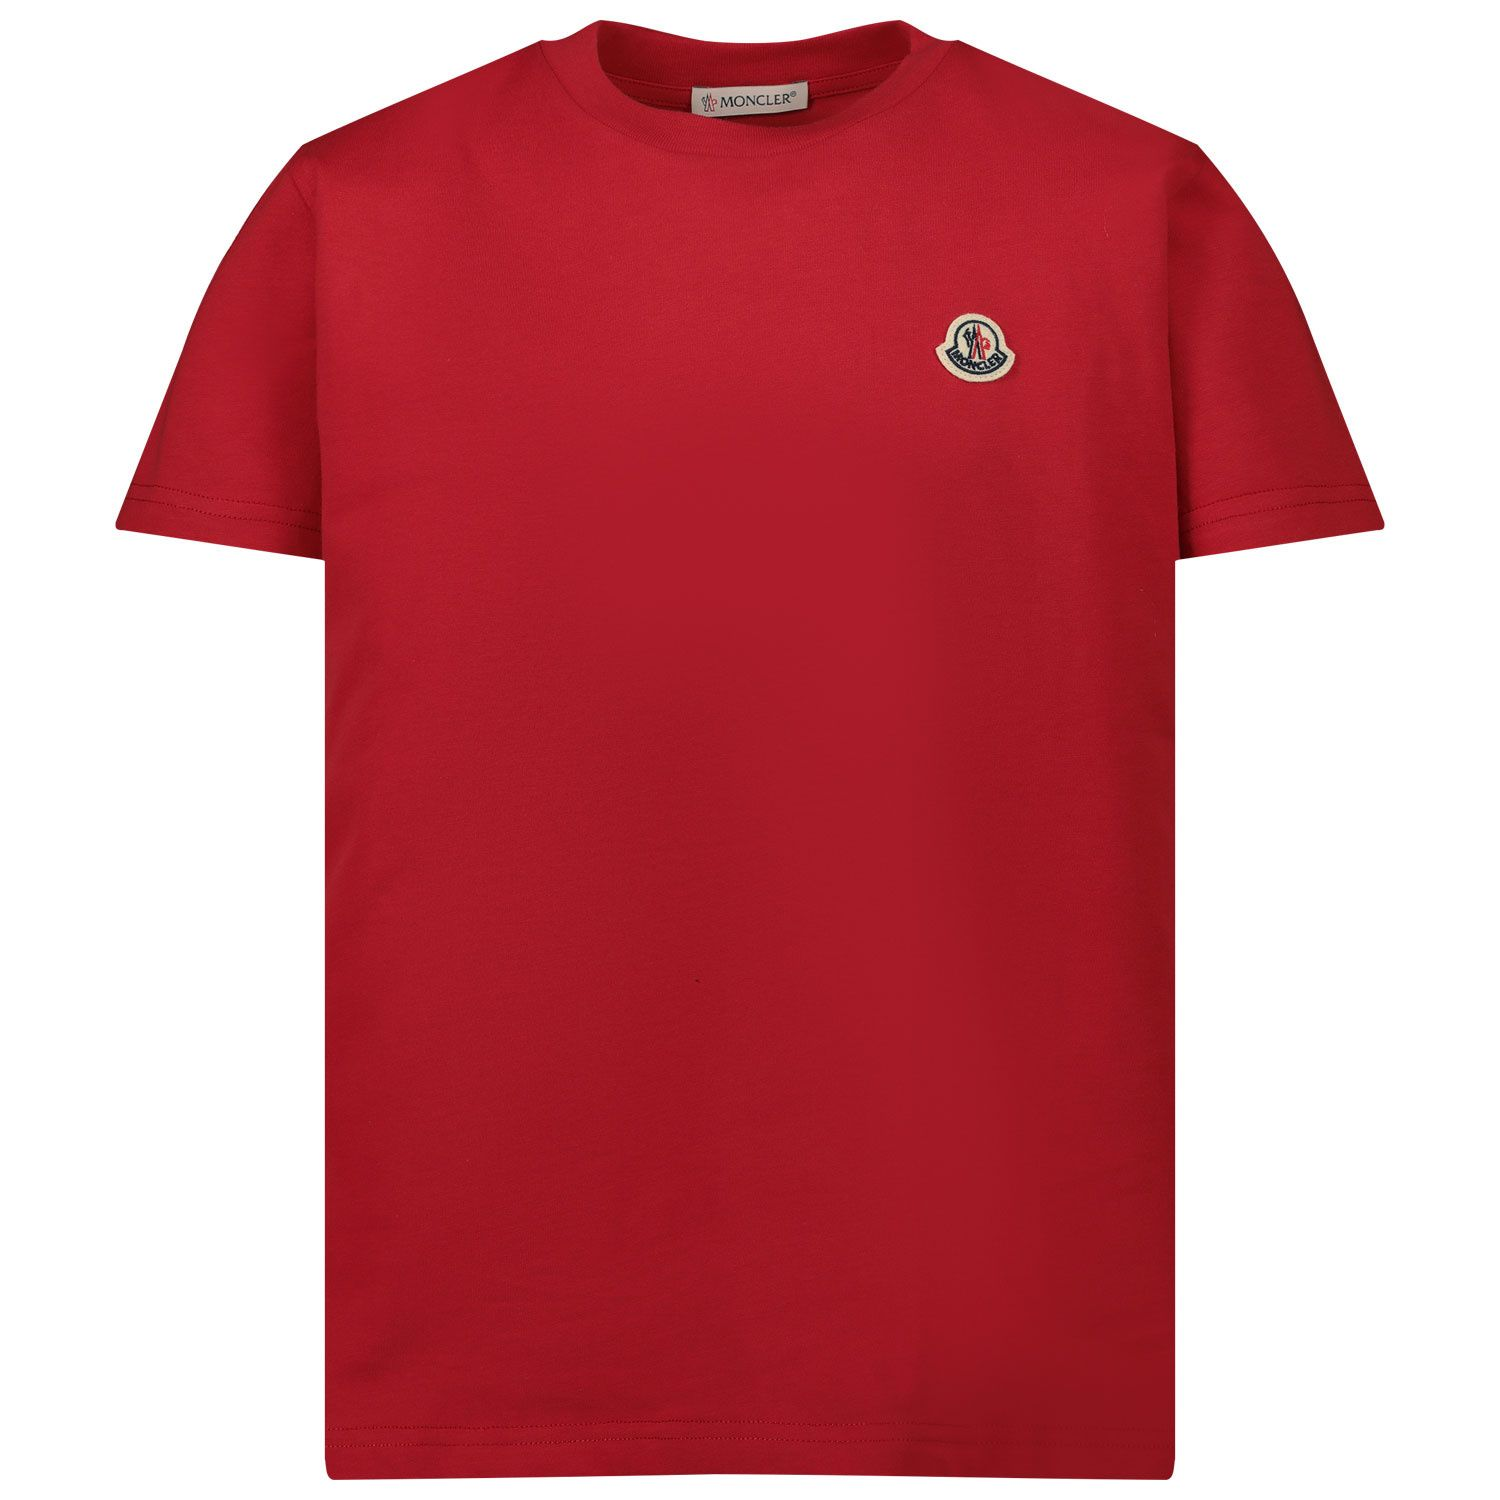 Picture of Moncler 8C74600 kids t-shirt red